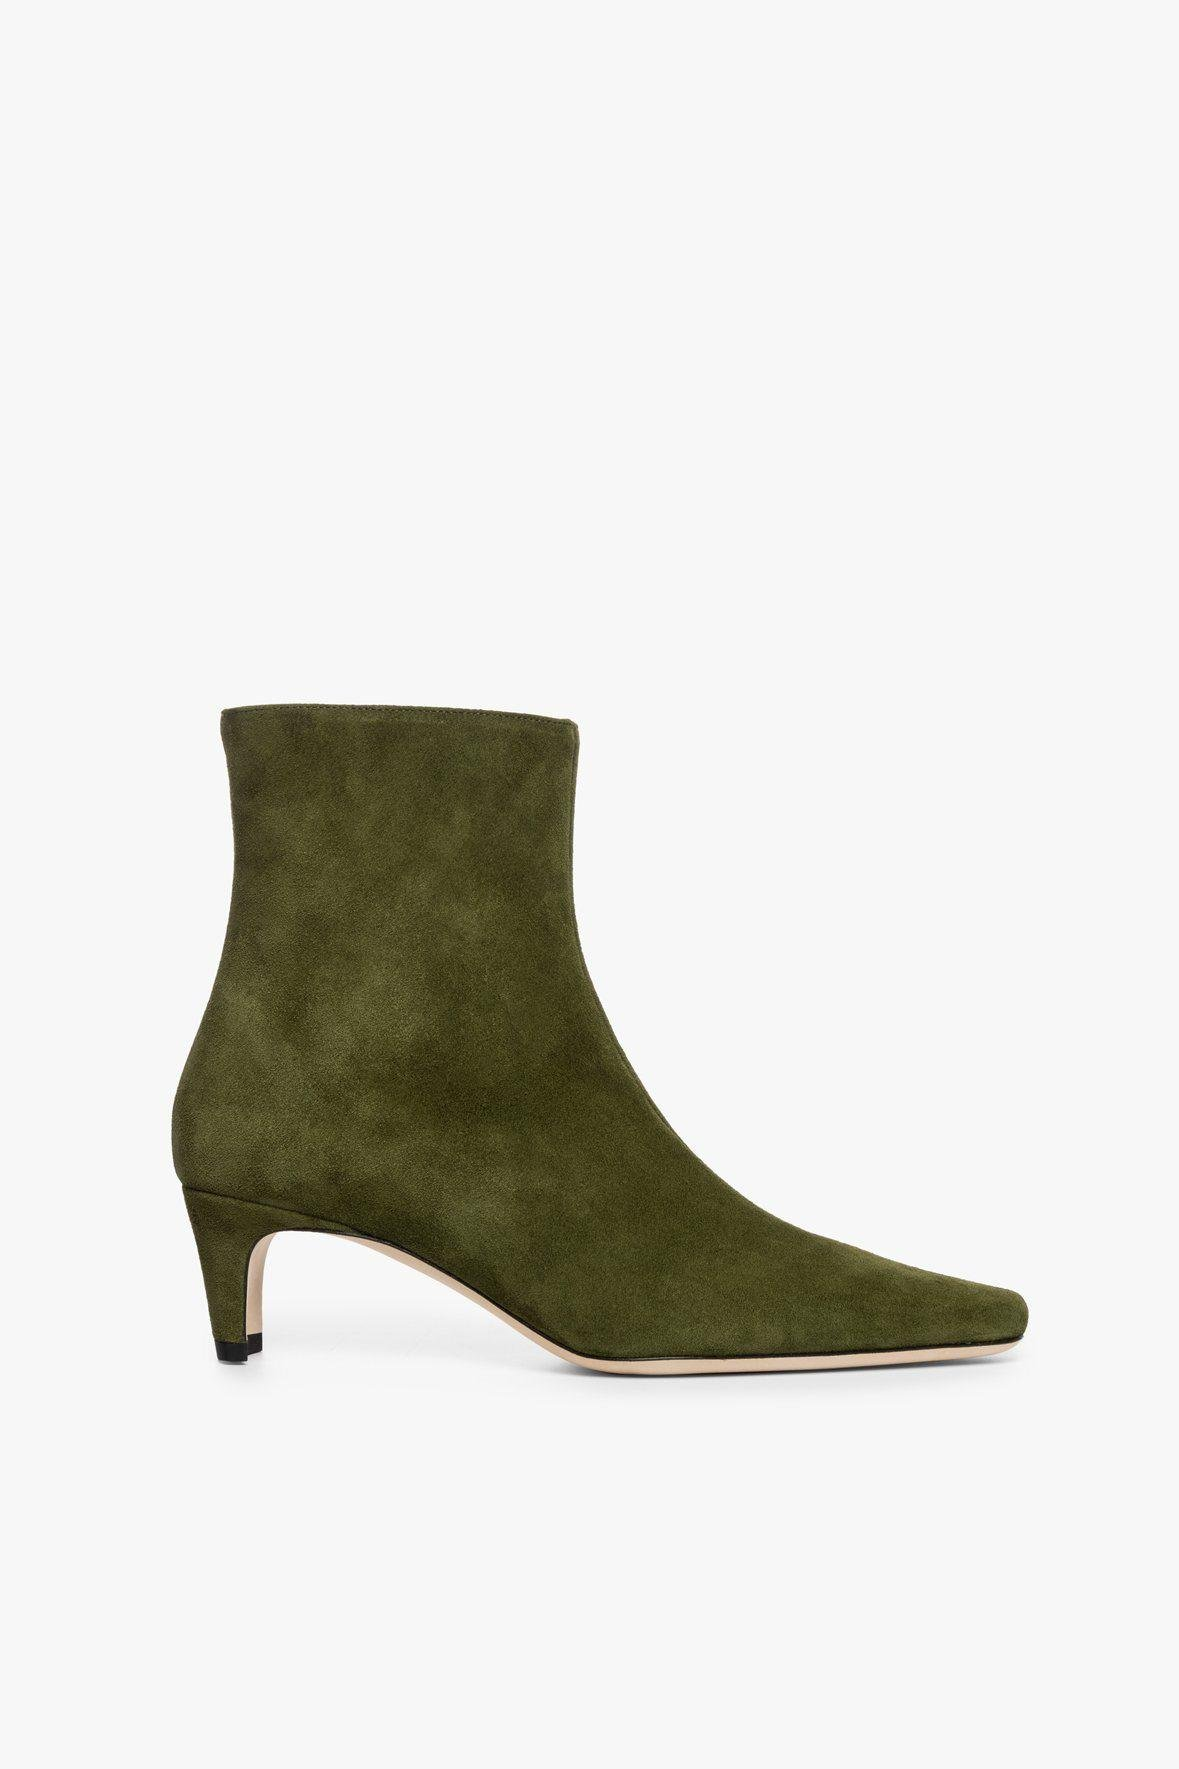 WALLY ANKLE BOOT | OLIVE SUEDE